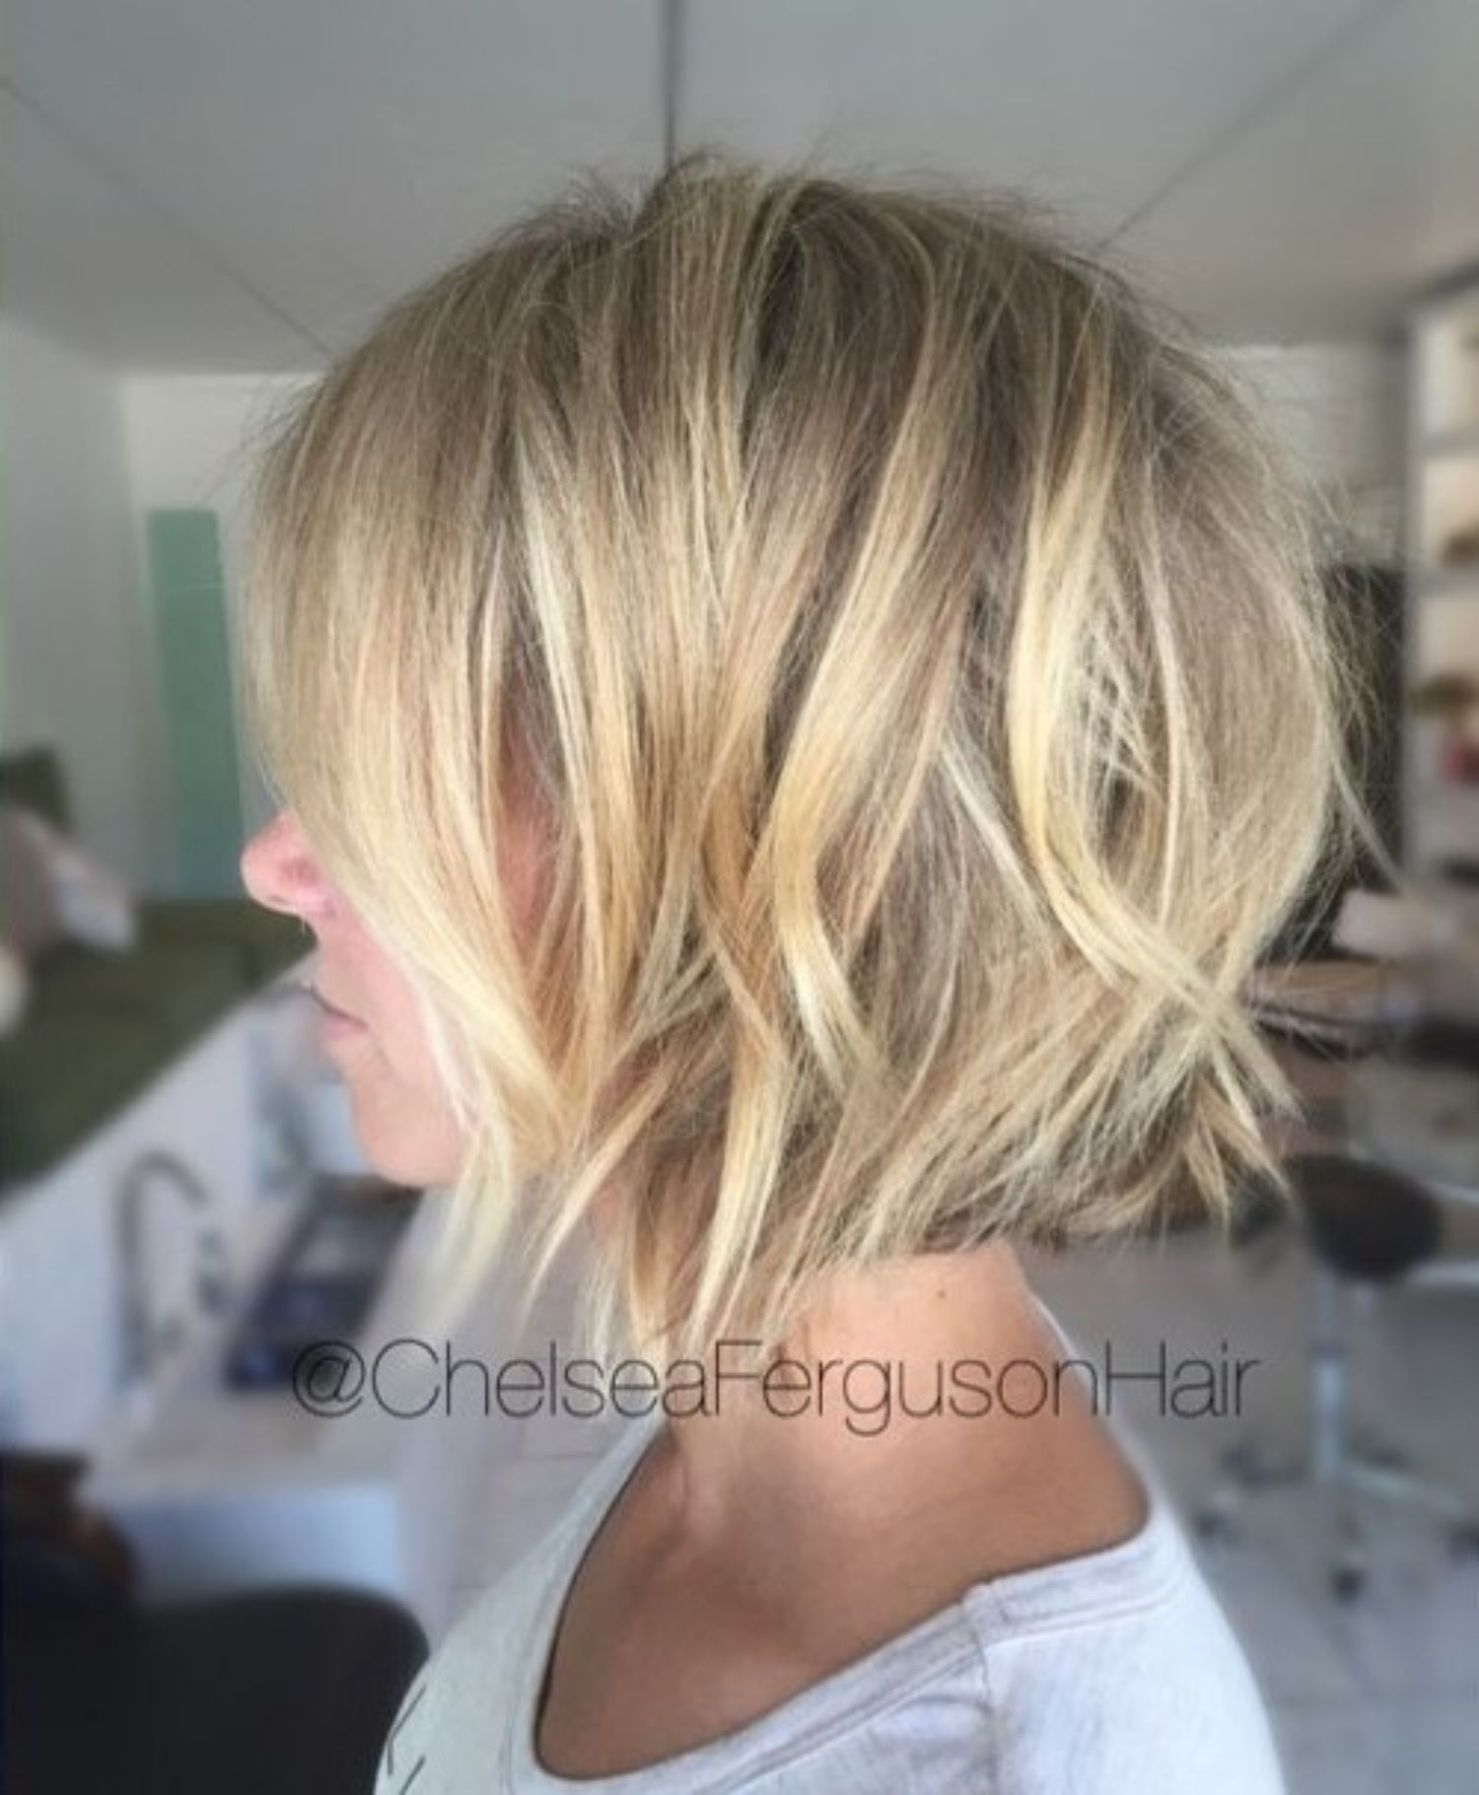 Choppy Piecey Bob Haircut Hair Styles Short Bob Hairstyles Blonde Bob Haircut